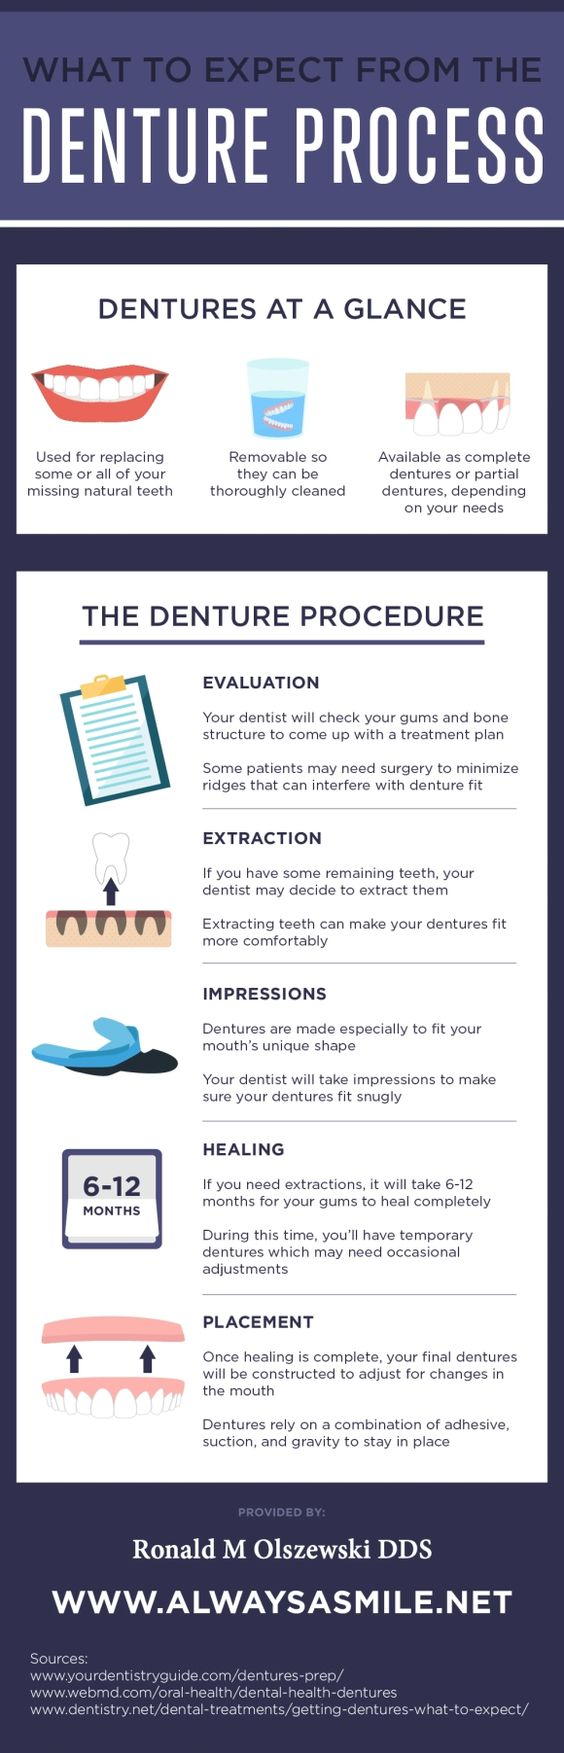 What to expect from Denture process